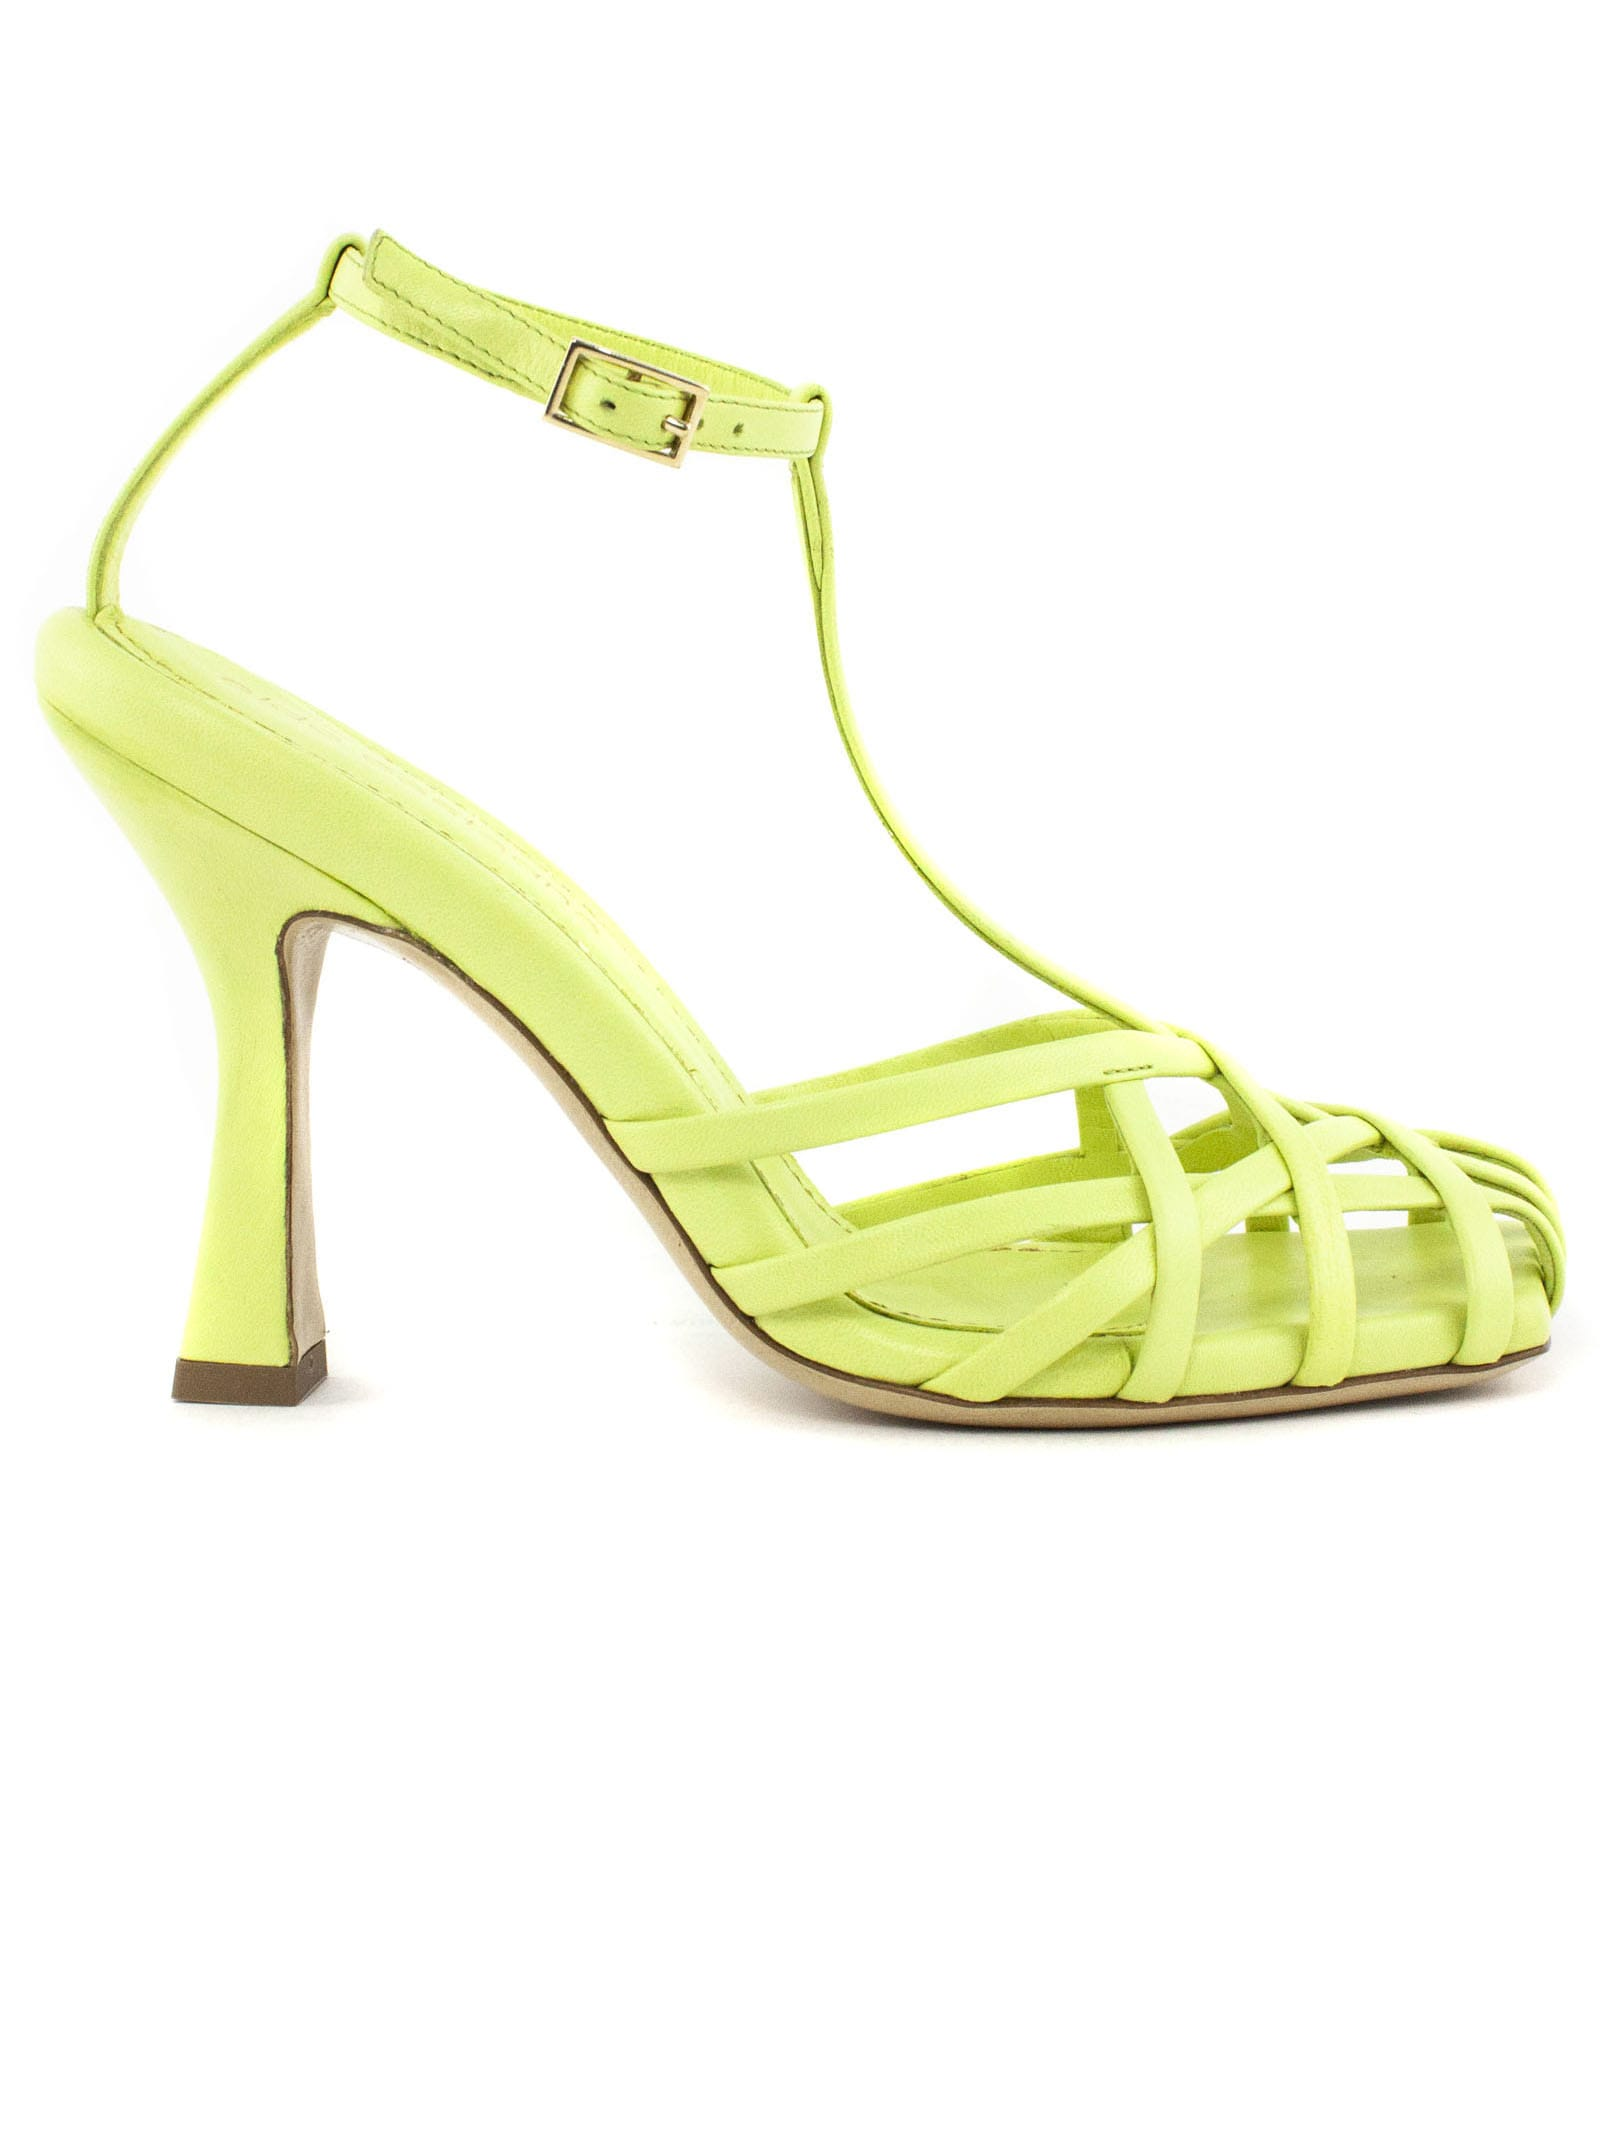 Aldo Castagna Lidia Green Leather Sandal